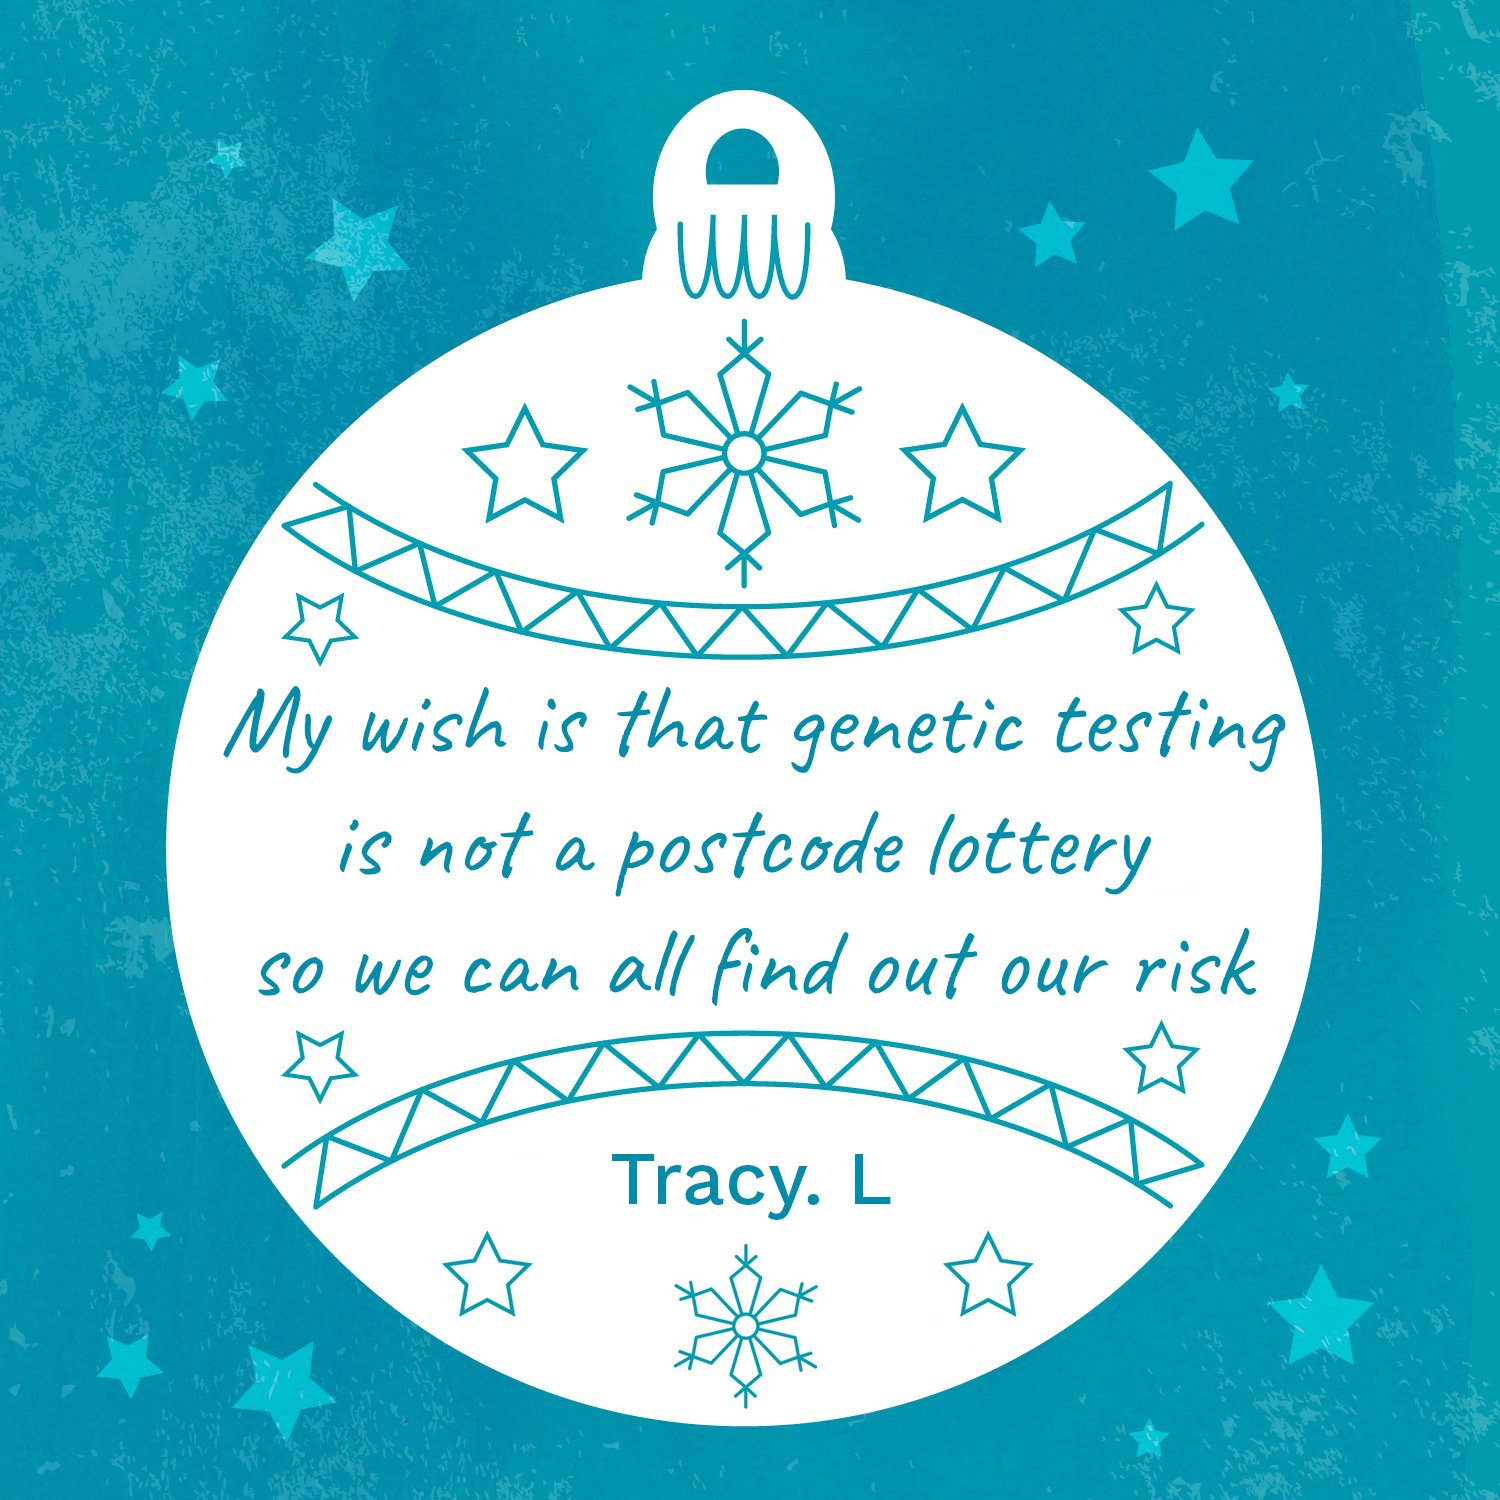 Tracy's wish for genetic testing